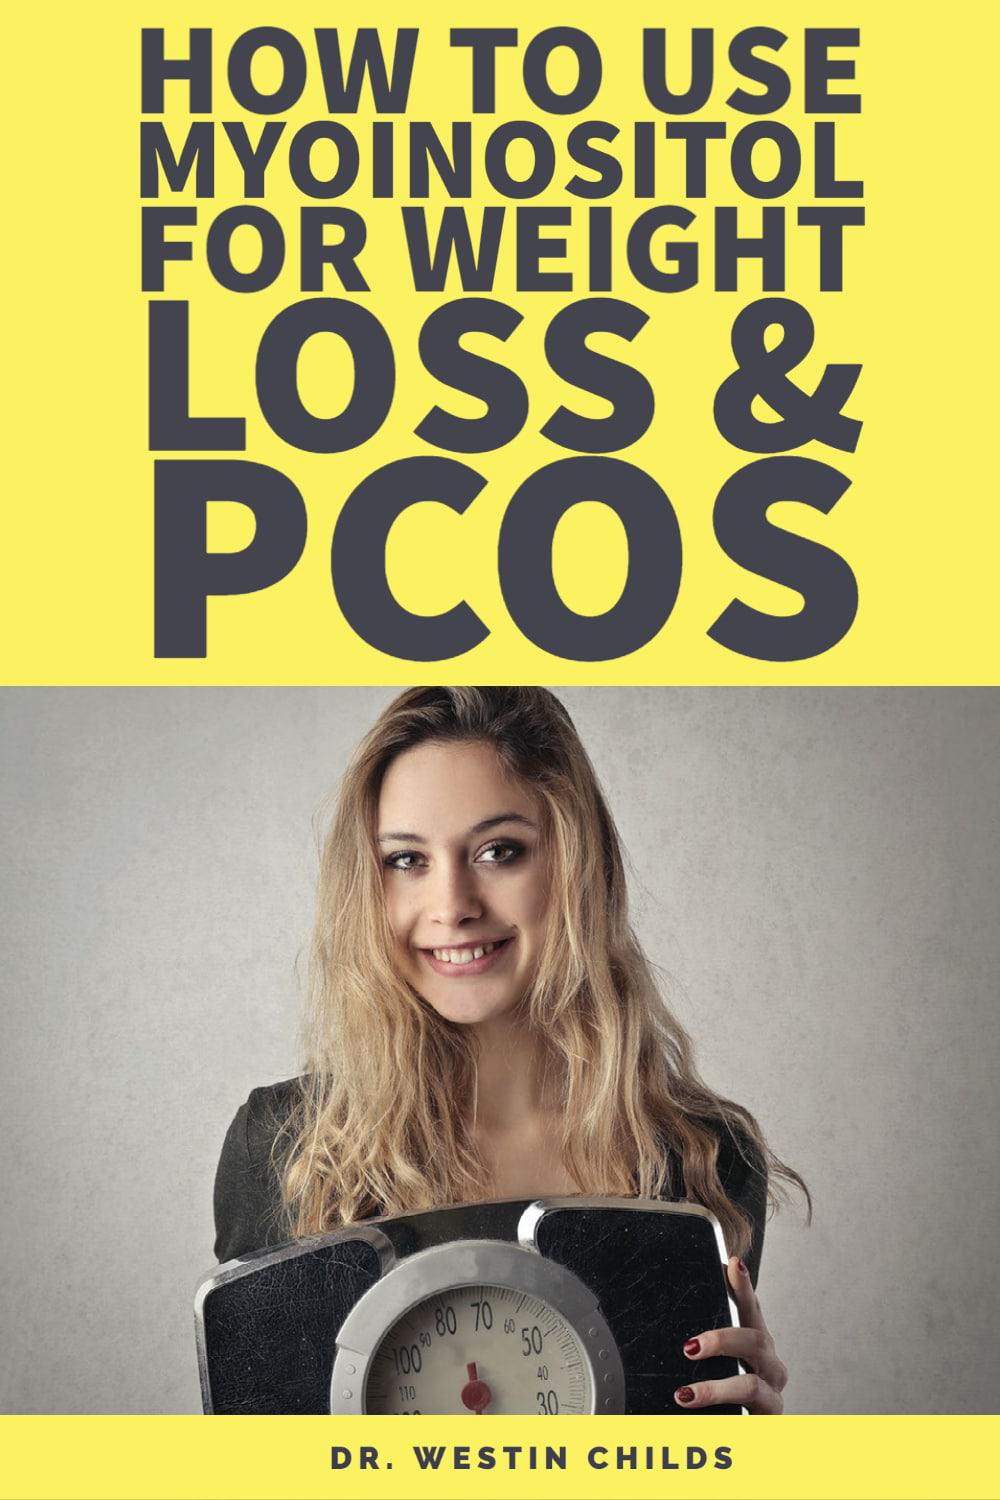 how to use myoinositol for weight loss and PCOS